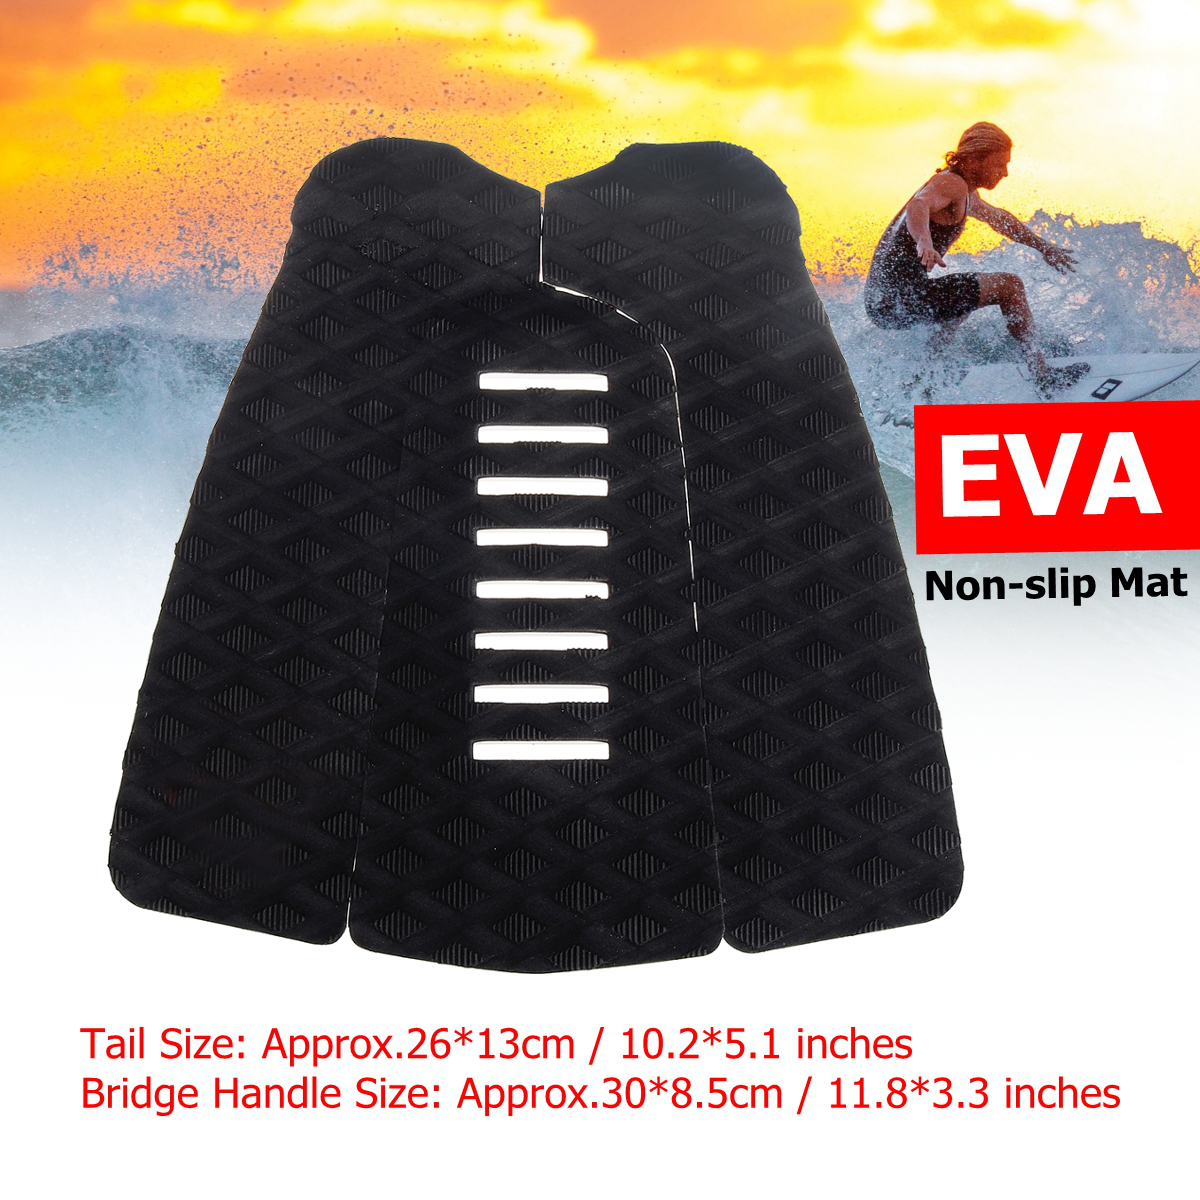 3Pcs/Set EVA Surfing Pads Anti-Slip Traction Surfboard Pad Outdoor Water Sports Surfing Deck Grip Mat Anti-shock Surfboard Pads